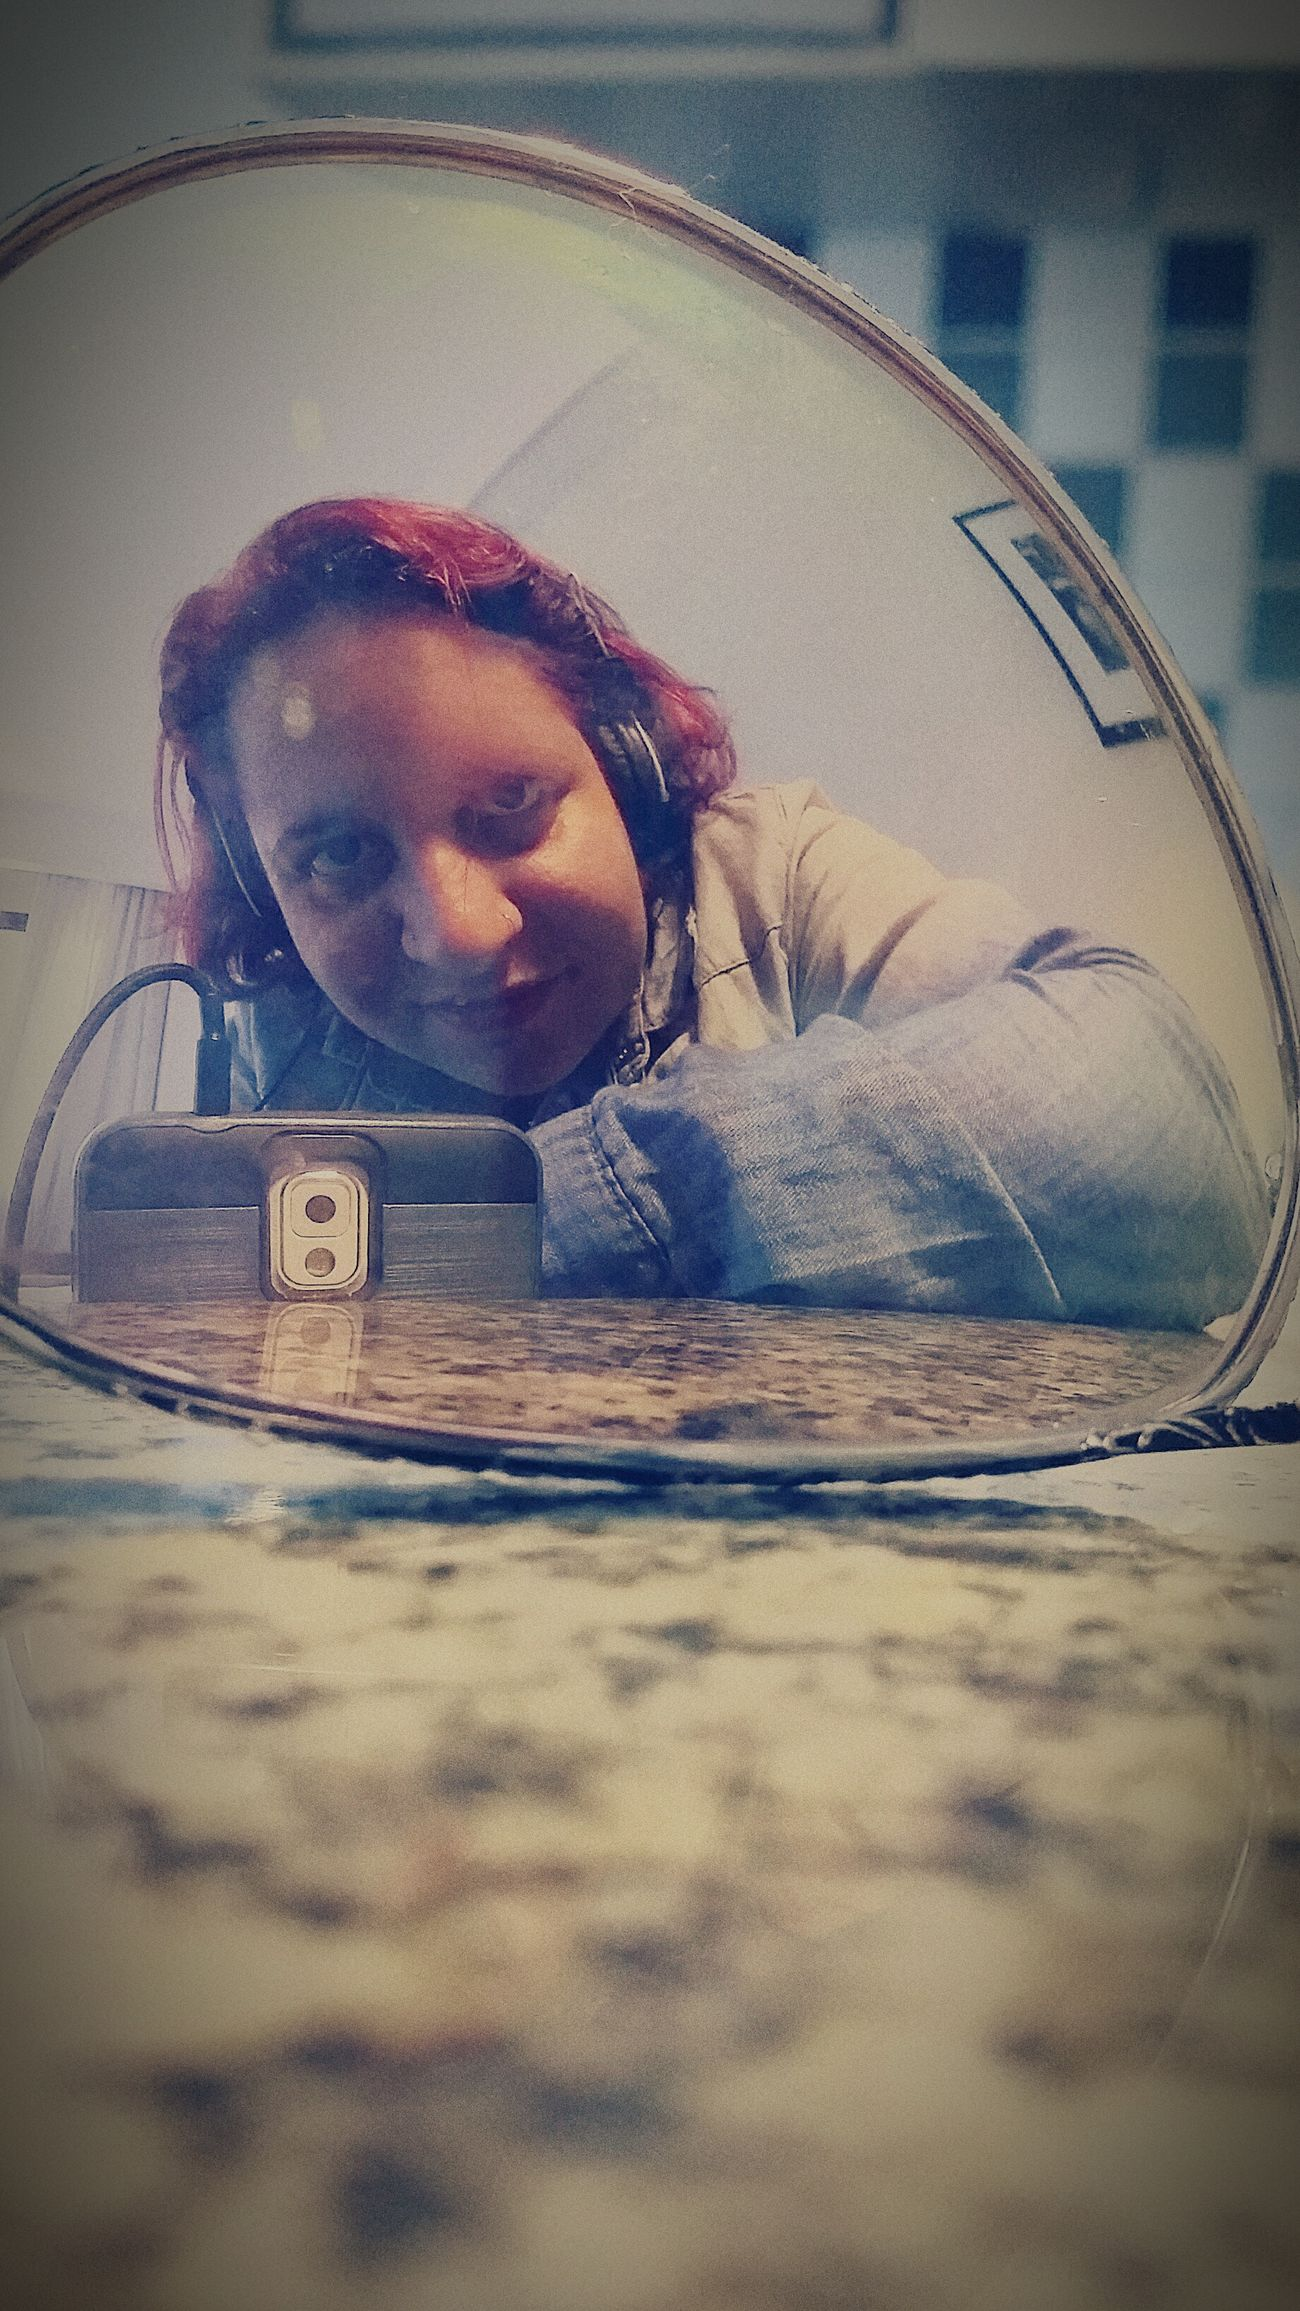 Reflections of myself Selfie Portrait Mirror Picture That's A Sunglass, Btw Curitiba, Brazil